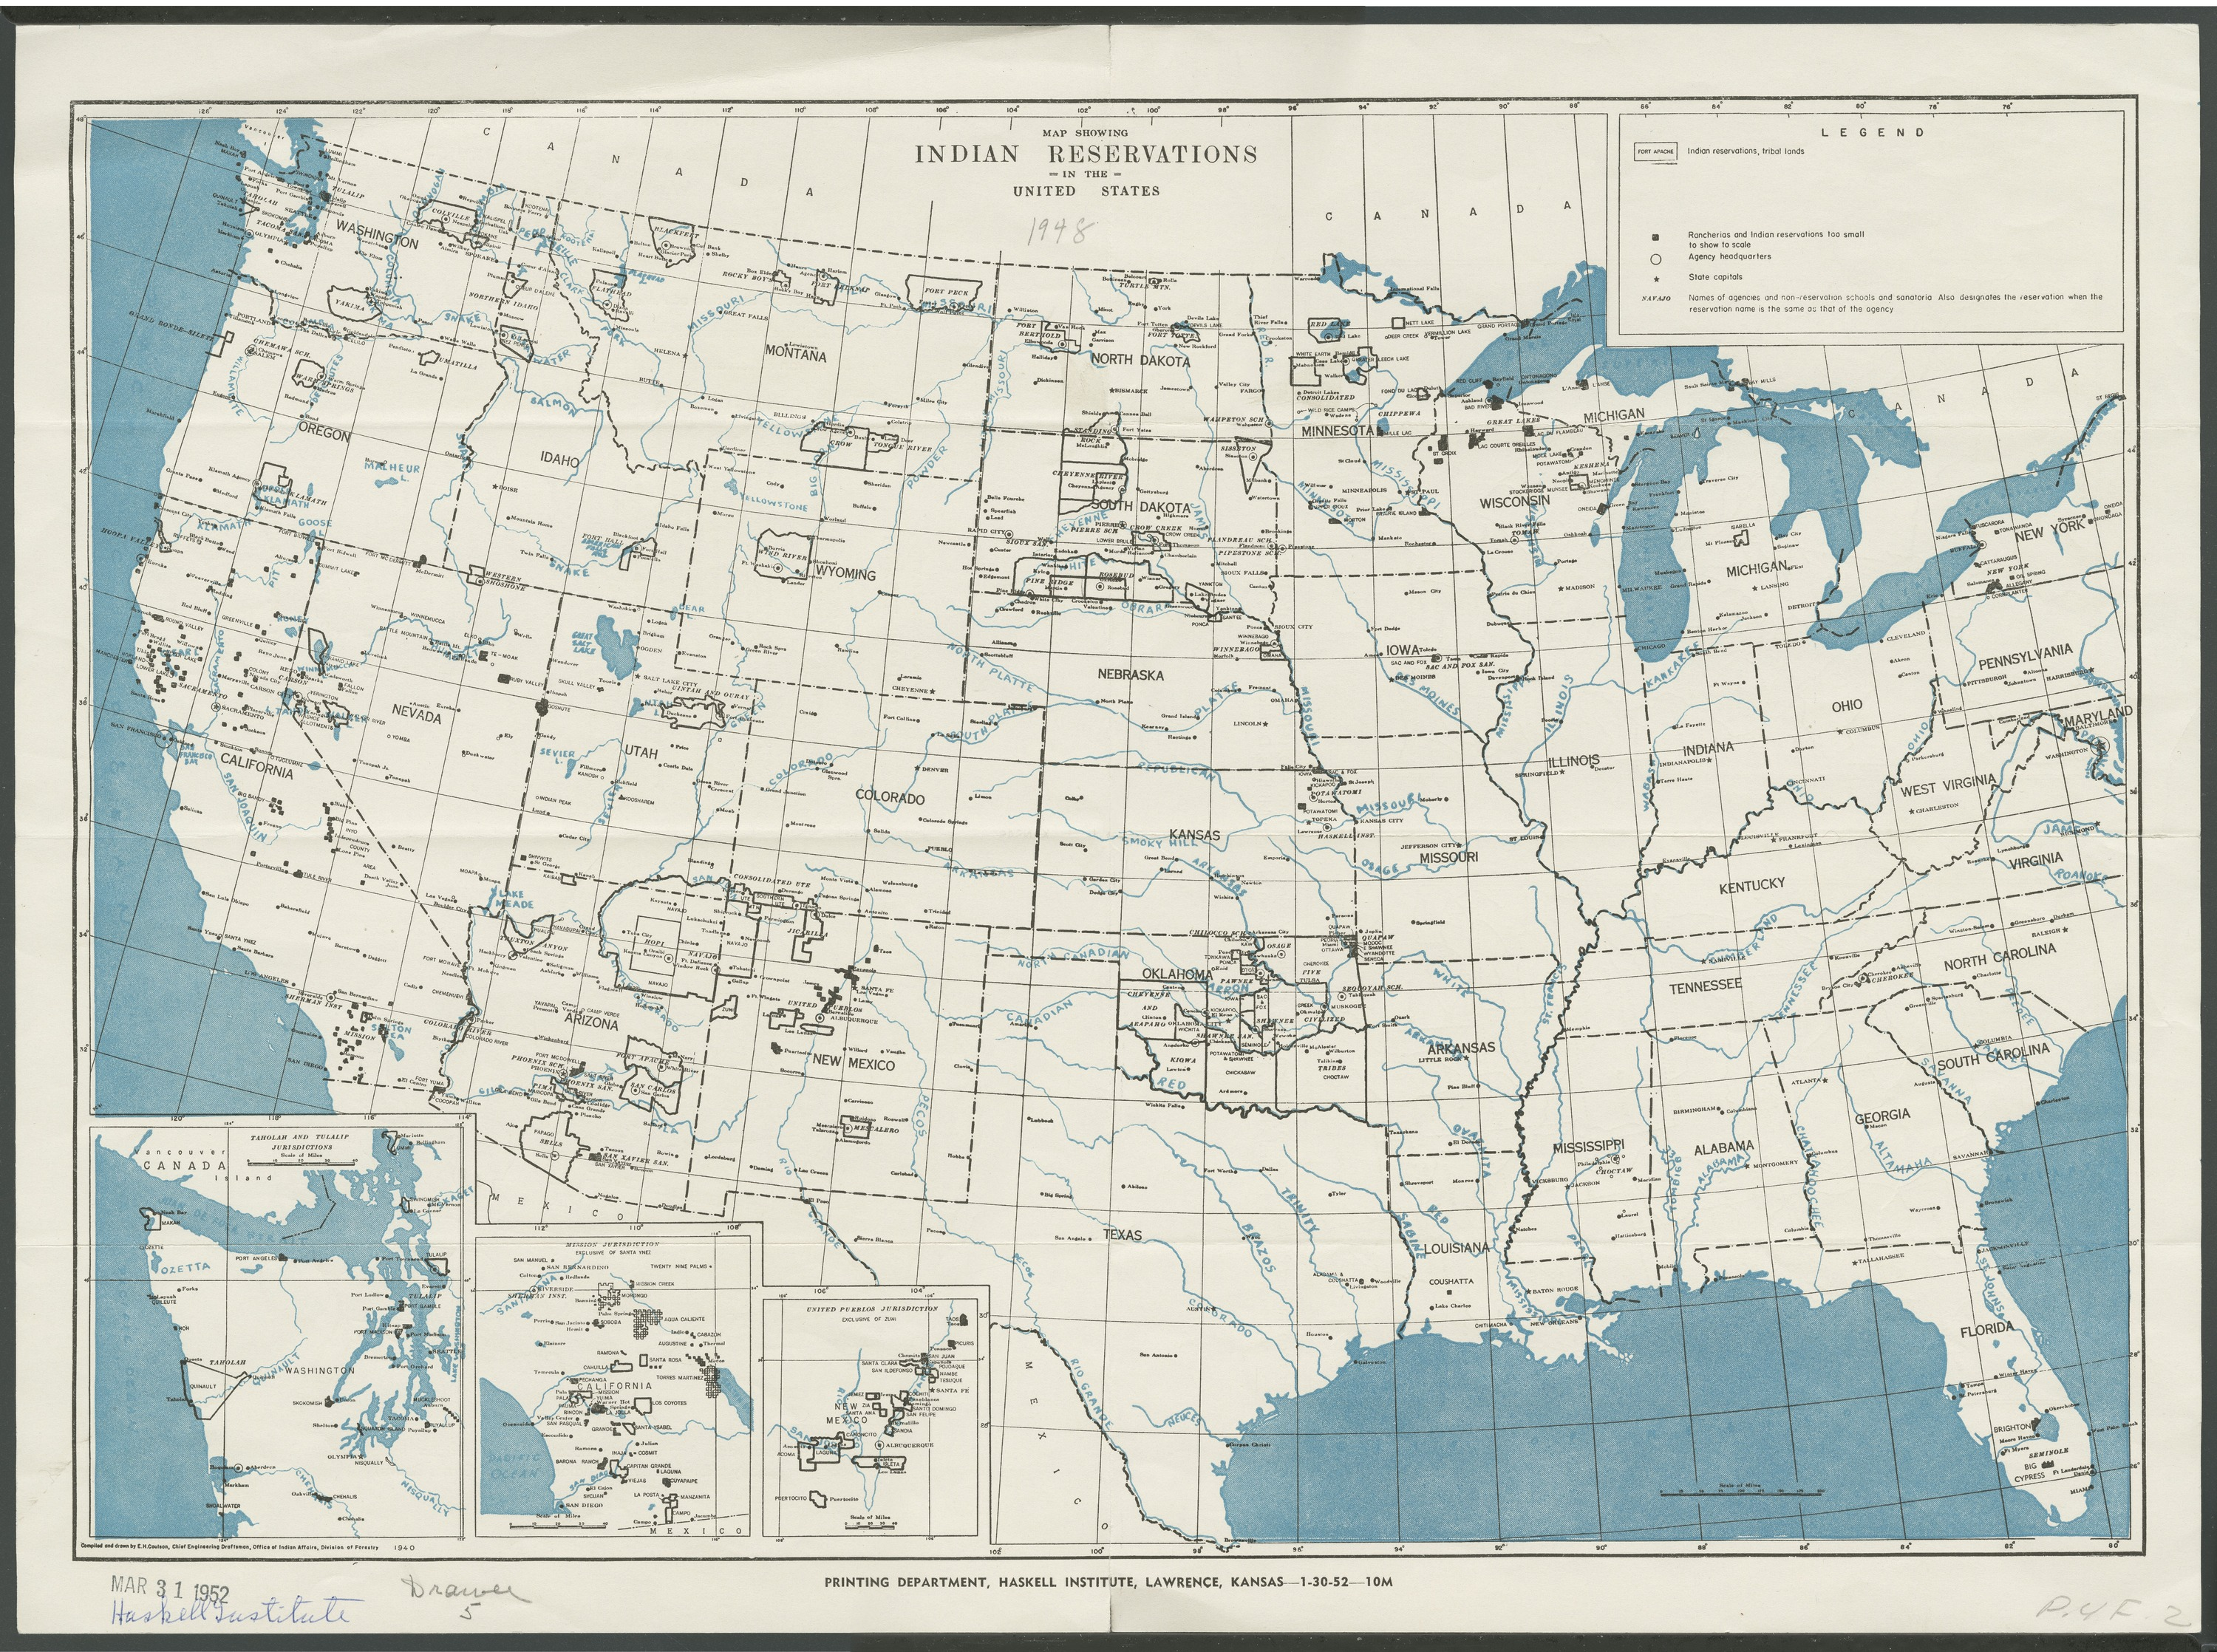 Map Showing Indian Reservations In The United States Kansas - Map of us indian reservations